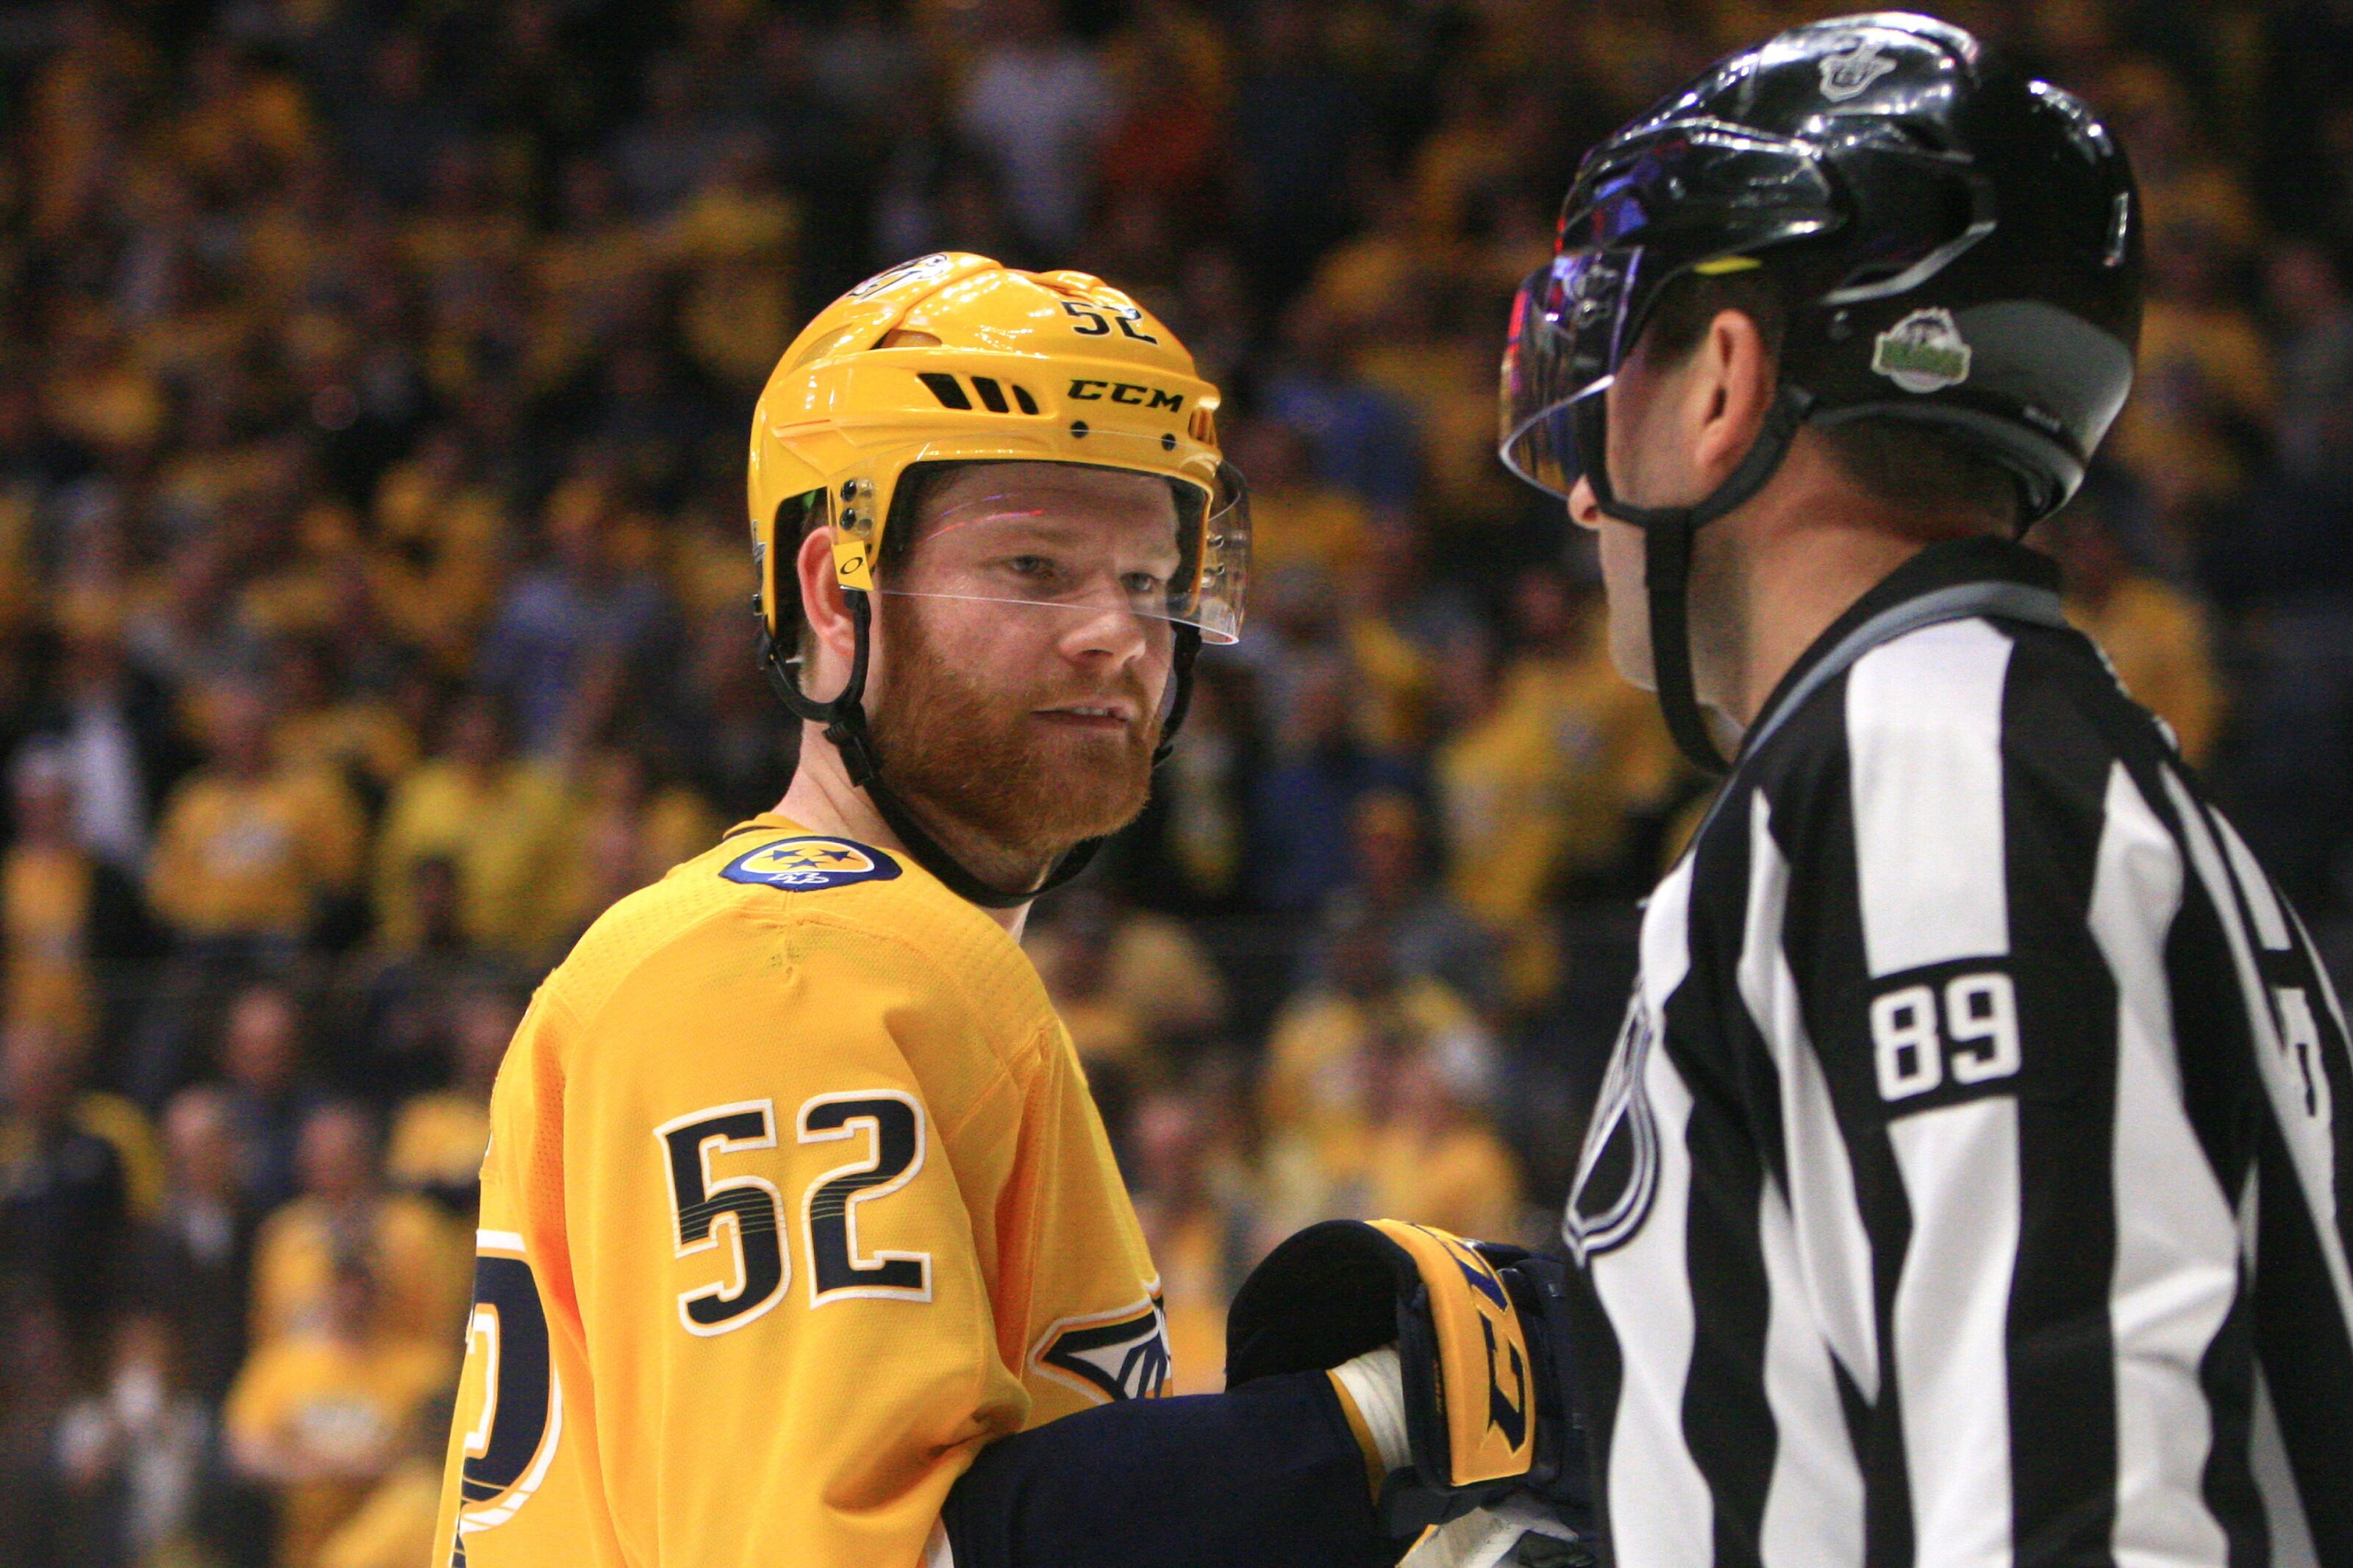 945579222-nhl-apr-12-stanley-cup-playoffs-first-round-game-1-avalanche-at-predators.jpg